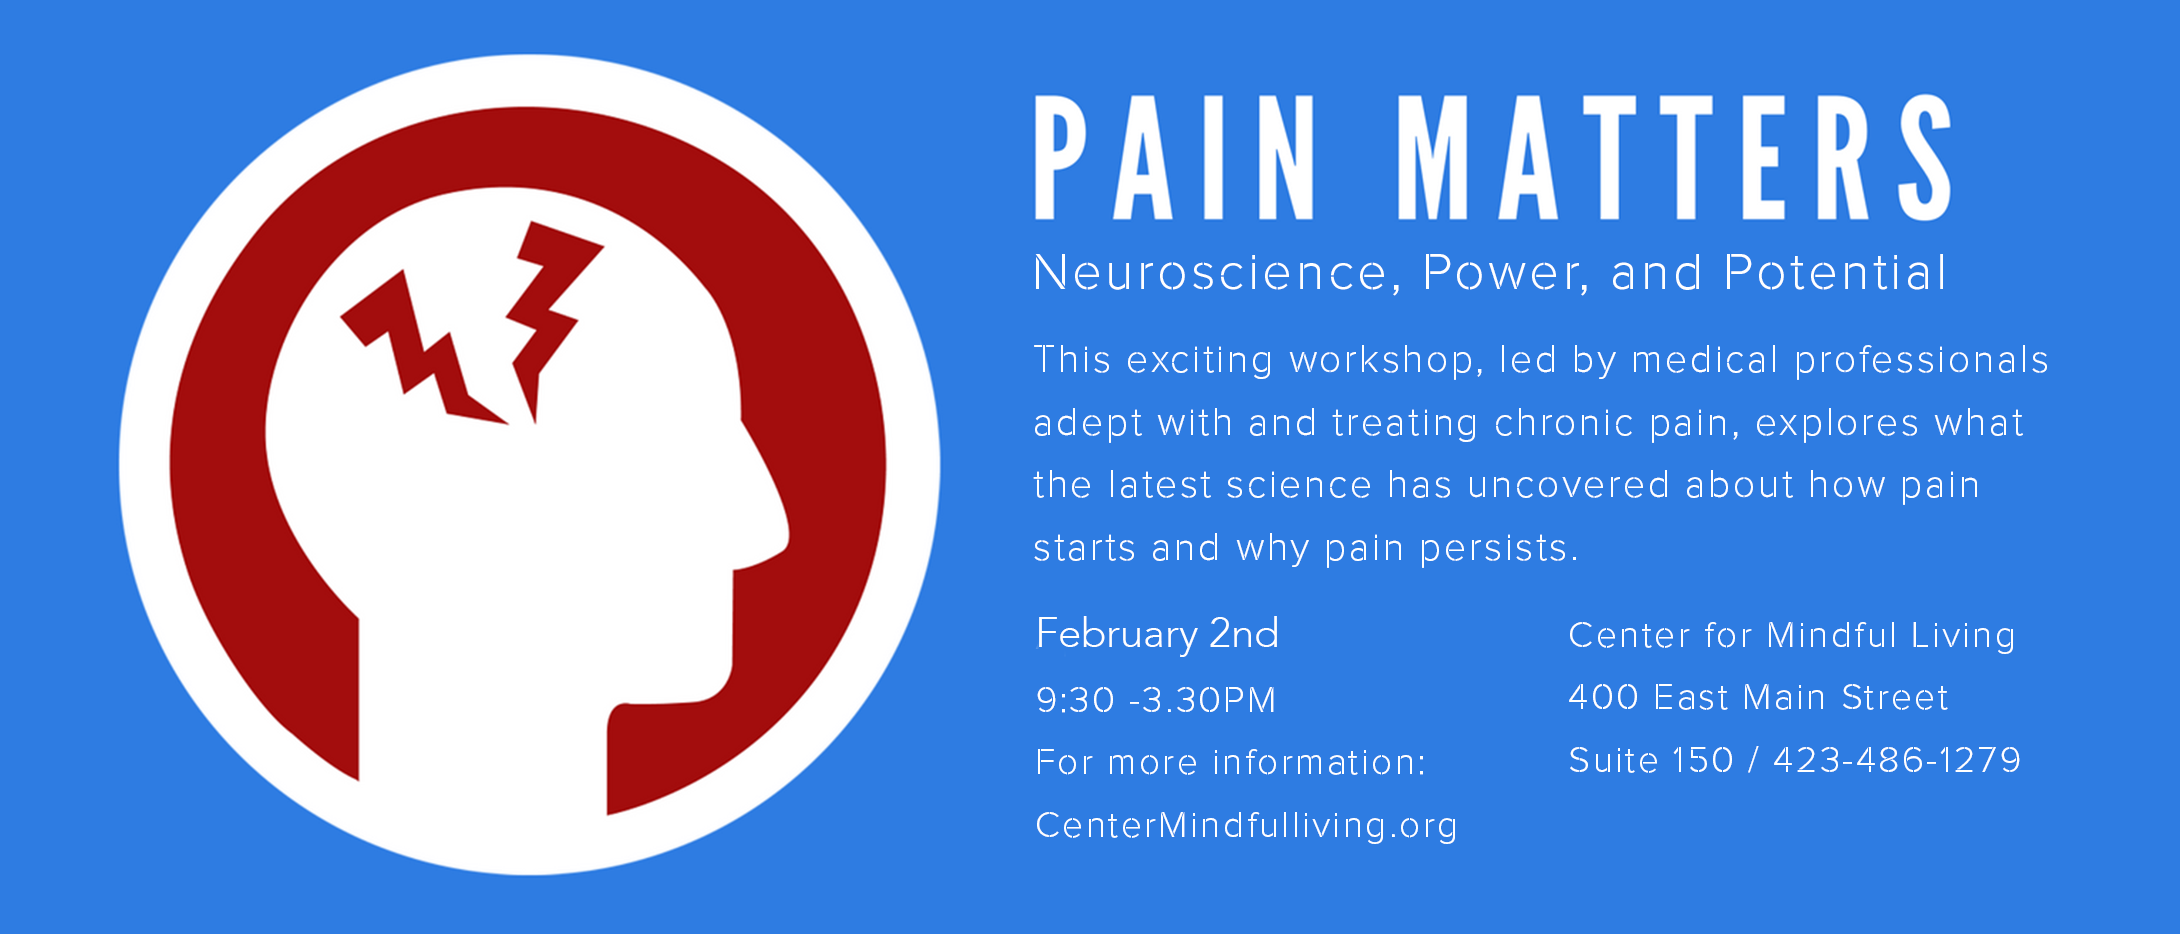 Pain Matters Slide February 2 2019.png